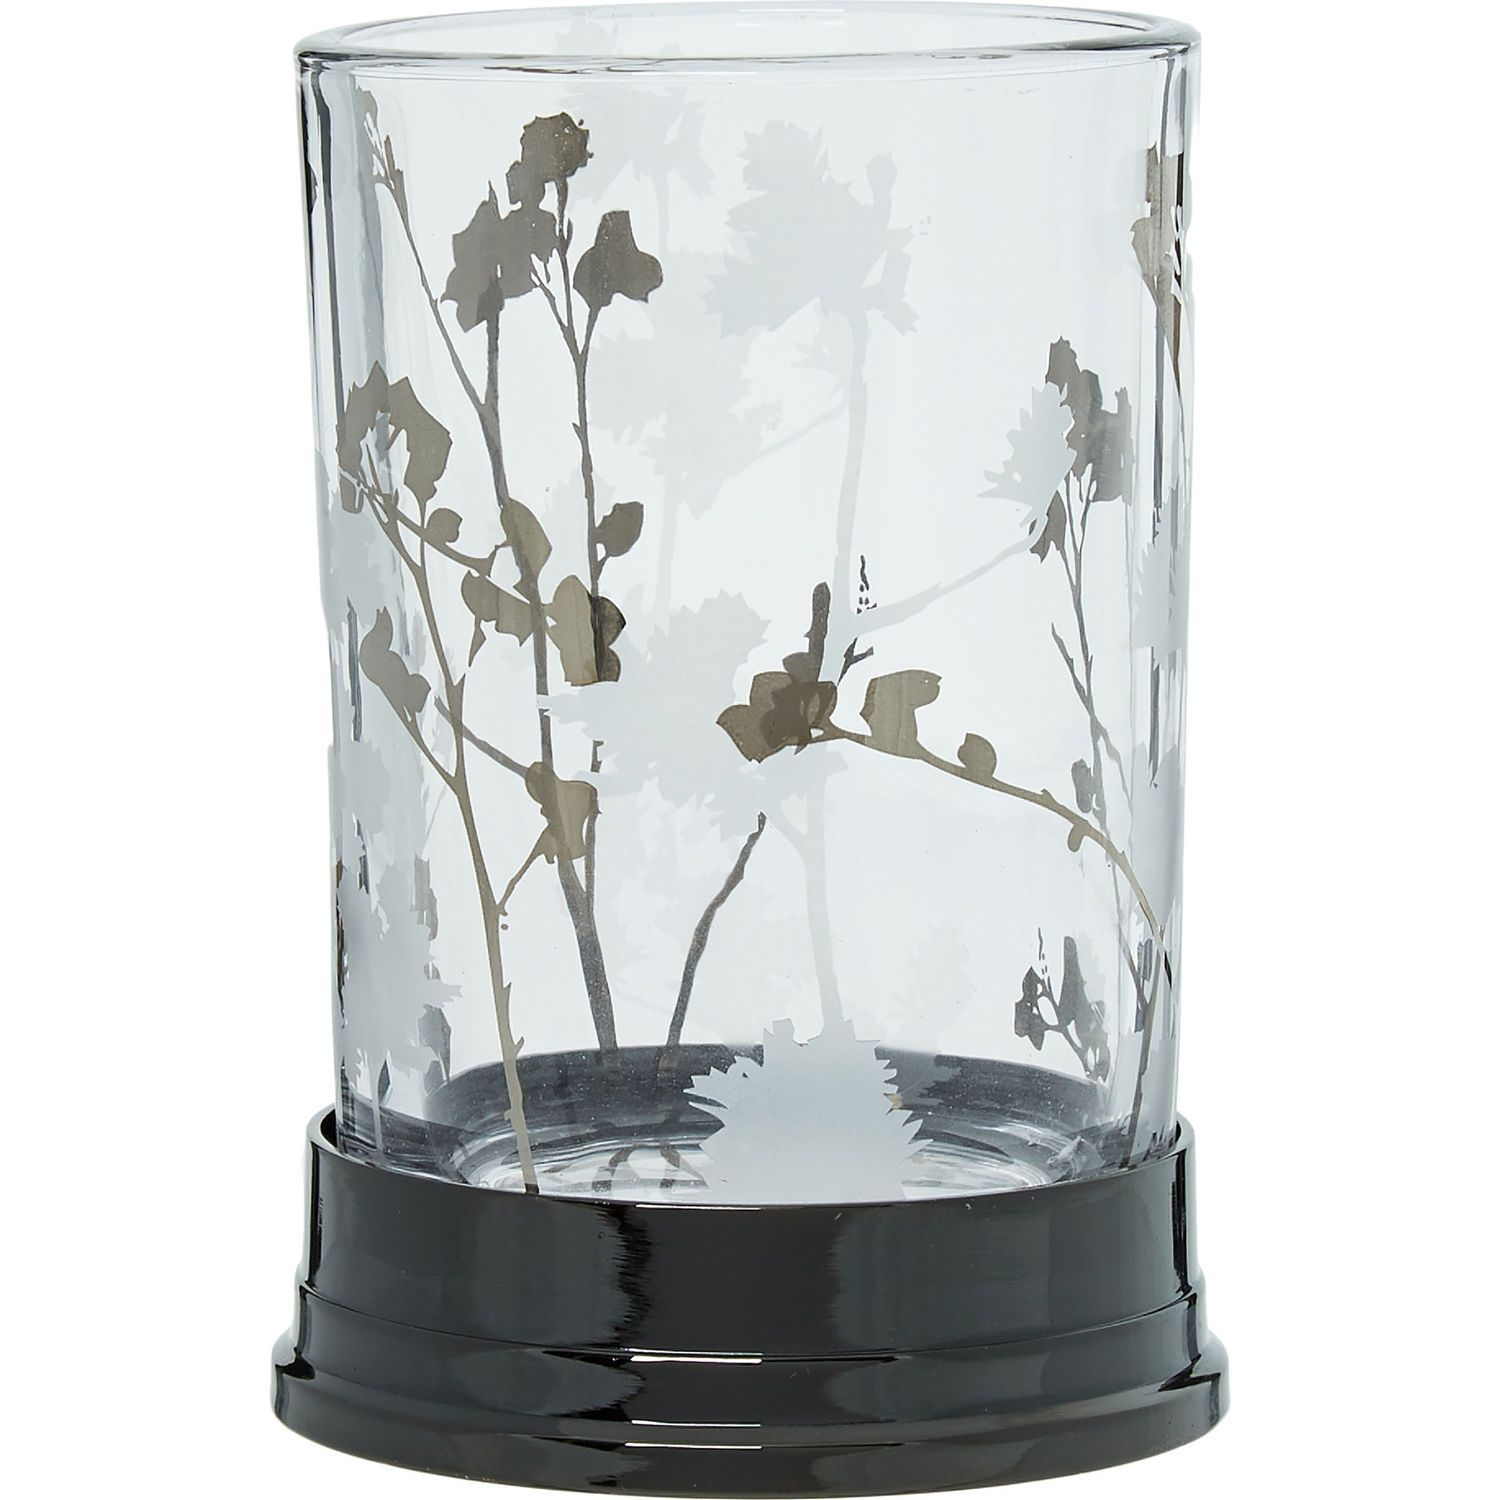 Gunmetal Floral Glass Toothbrush Holder - Bathroom Accessories - Bed ...